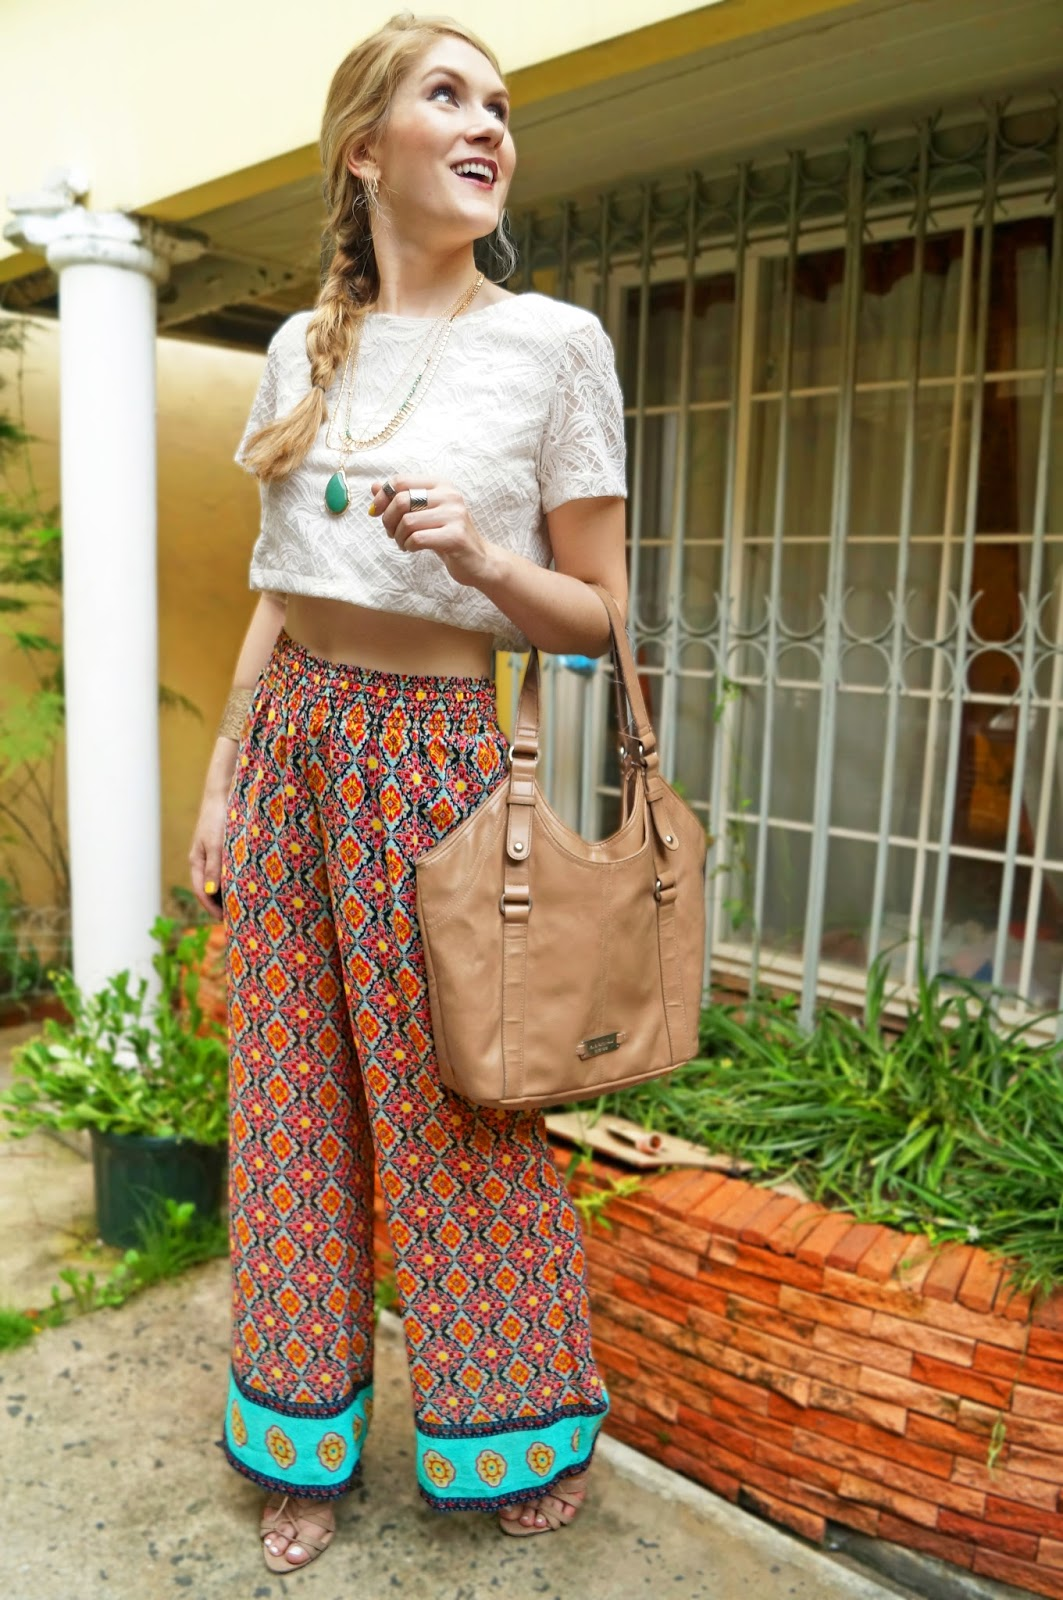 ... 50 Boho Fashion Styles for Spring/Summer - Bohemian Chic Outfit Ideas